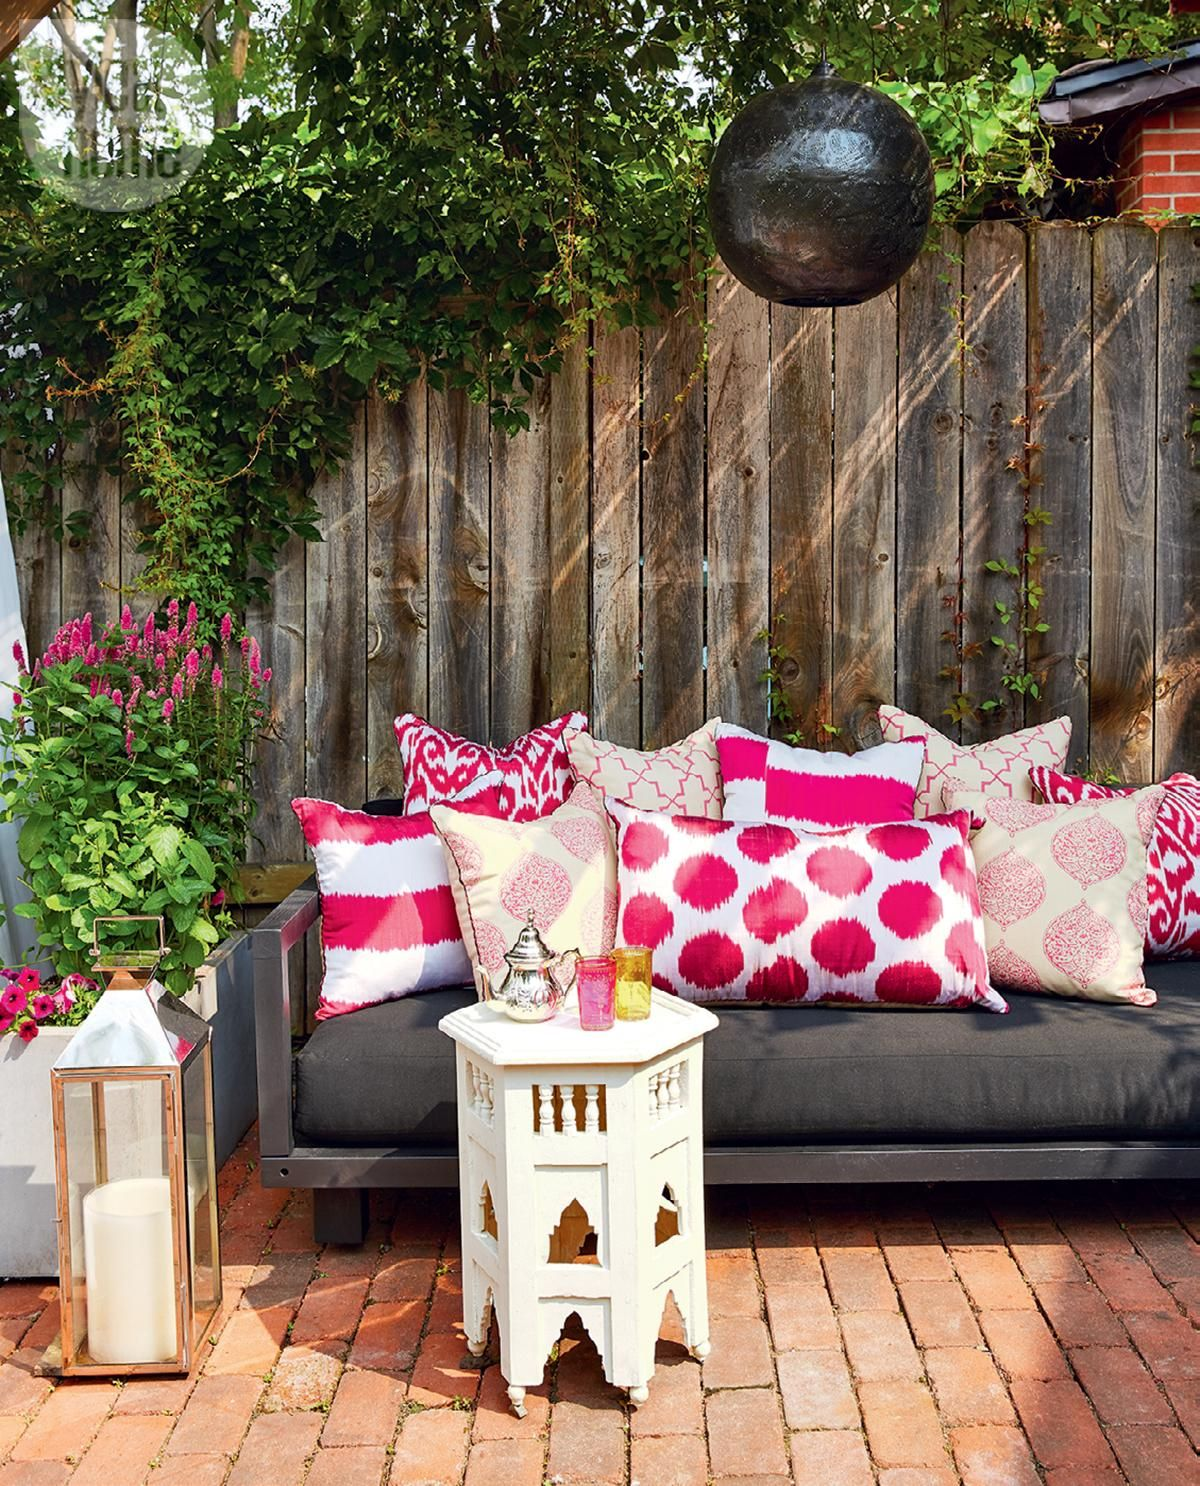 Black and Pink Outdoor Pillows